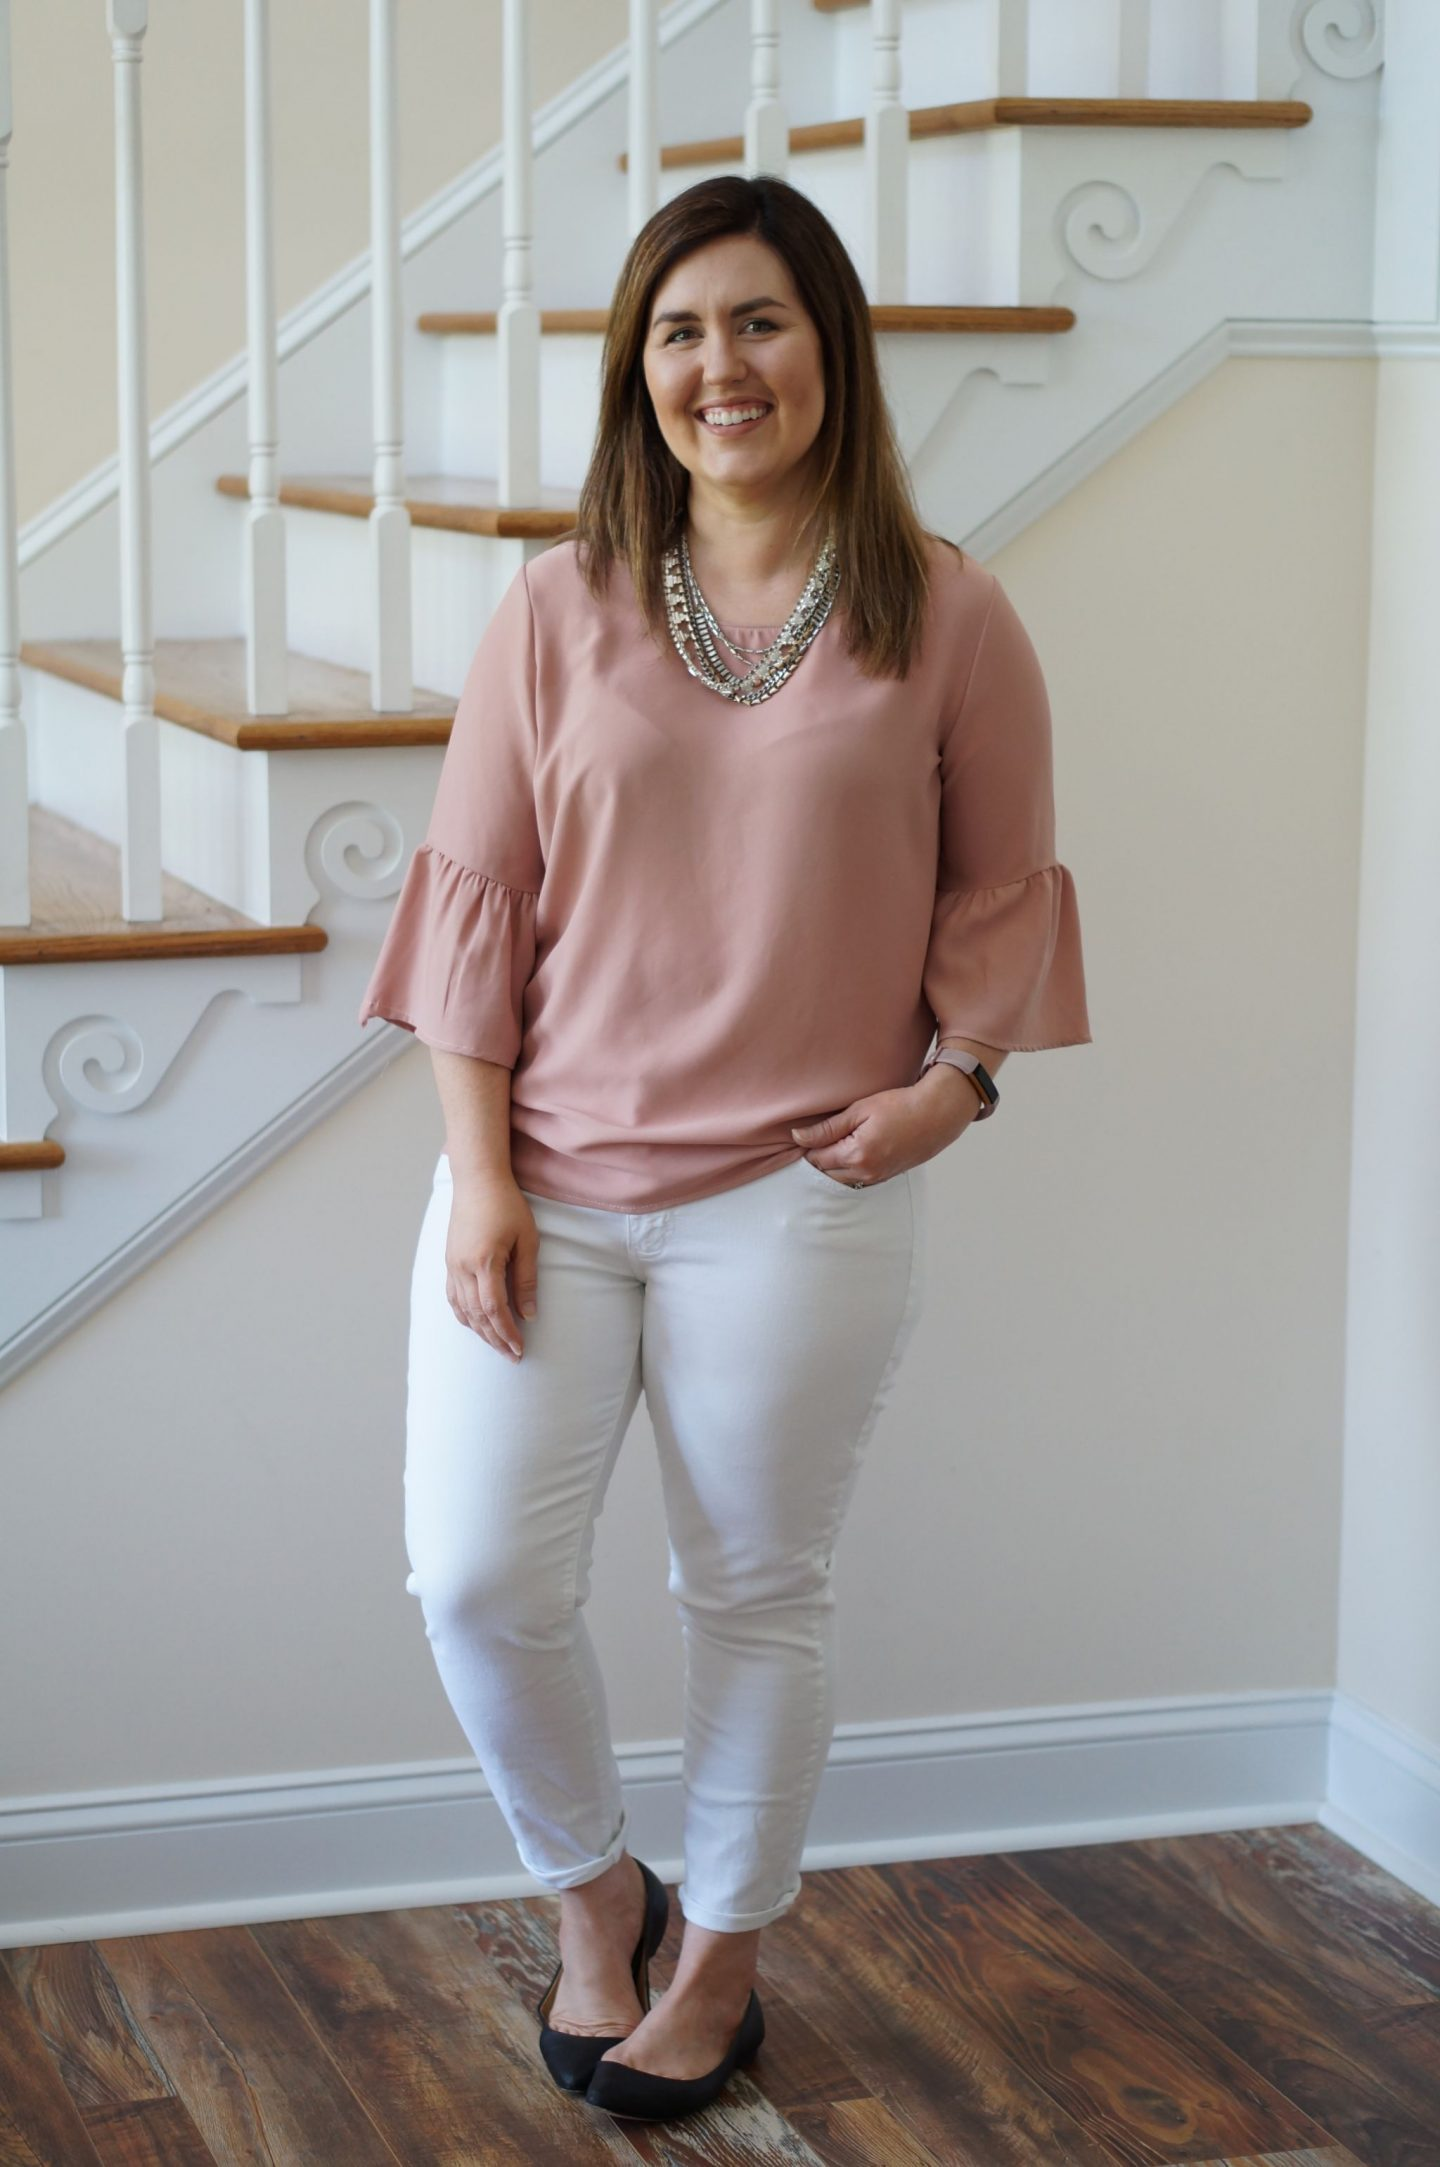 North Carolina blogger Rebecca Lately shares her favorite shoes for Valentine's Day. If you want something girly and comfy, check these out!